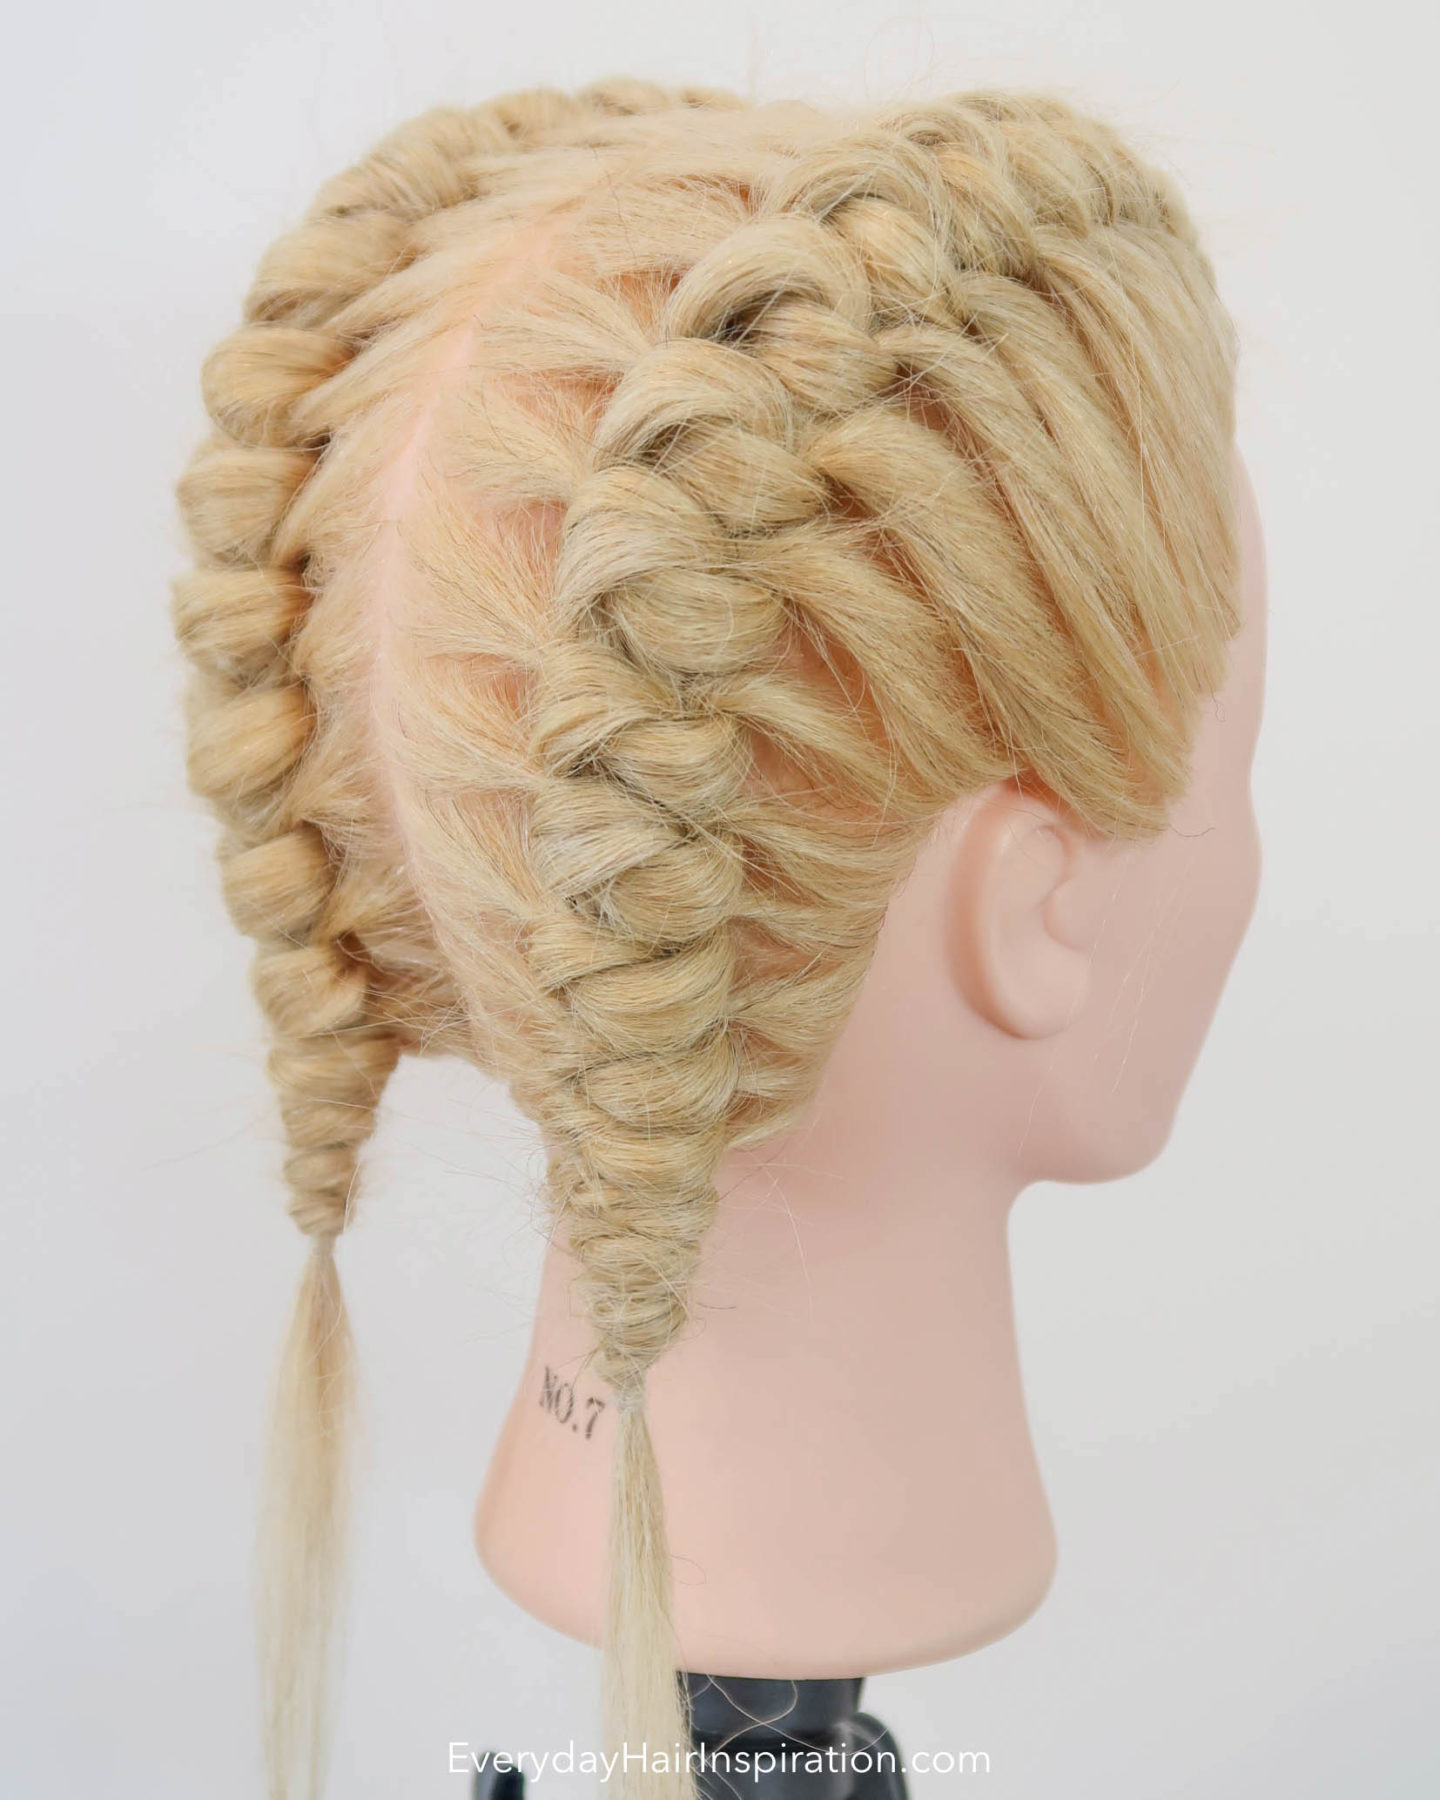 Blonde hairdresser head, seen from the side with double knot braids